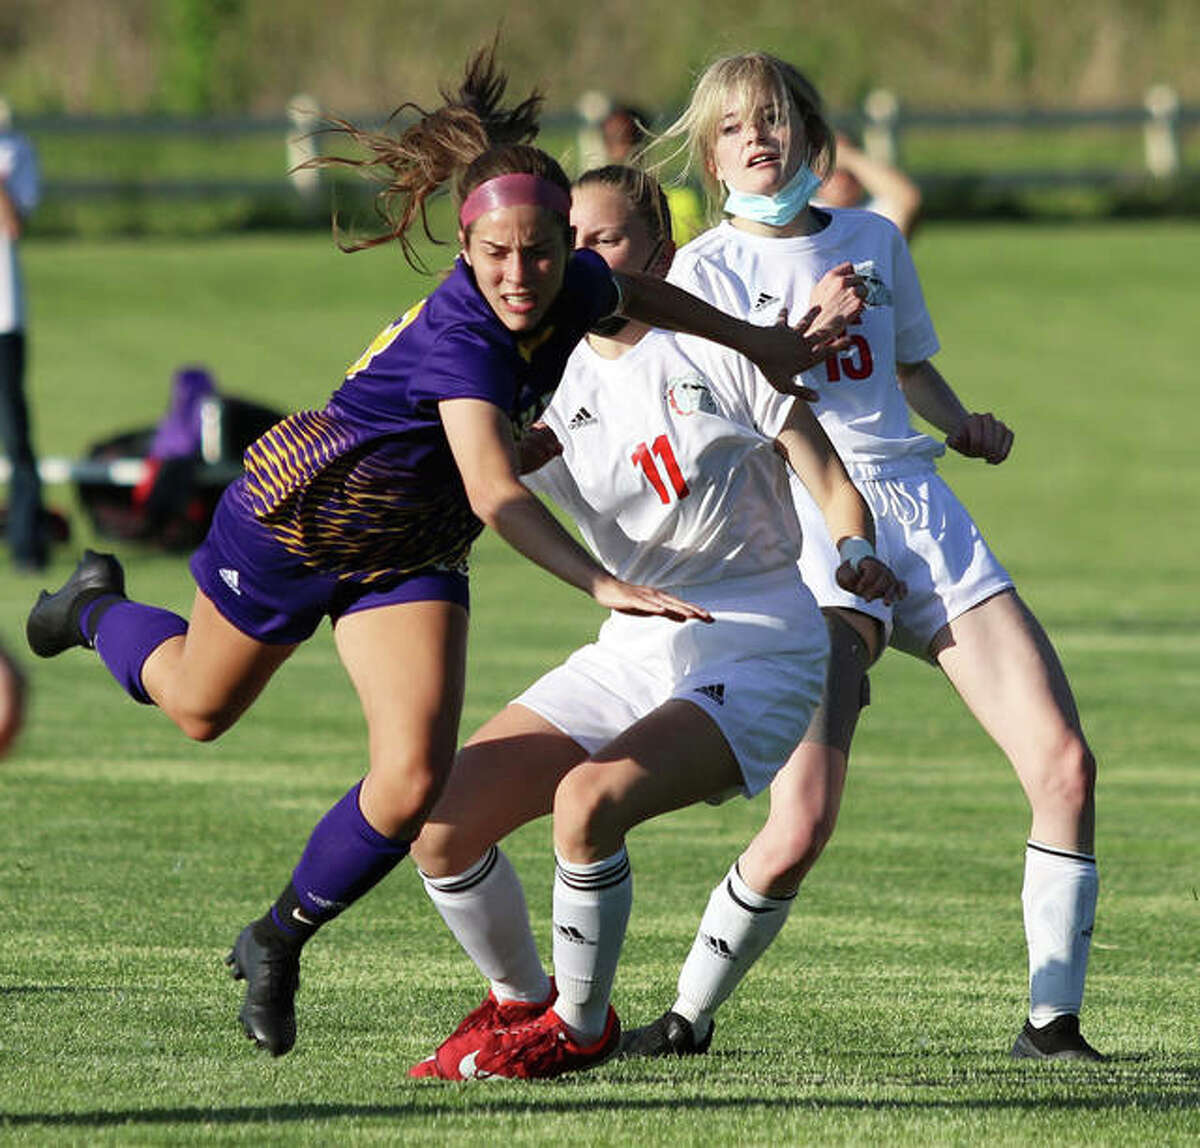 CM's Katie Peterson (left) is fouled by Highland's Bella Kallal (11) with the Bulldogs' Kaitlyn Rider also defending on the play in the Eagles' 7-0 win in a Mississippi Valley Conference girls soccer match on Thursday at the Bethalto Sports Complex. The Eagles were back on their home pitch Saturday and posted another 7-0 shutout against the Jersey Panthers. CM led Jersey 6-0 at halftime. Aubree Wallace had two goals, with Peterson, Mady Zyung, Ellah Brown, Ellie Little and Claire Christeson also scoring for CM, which had Emily Williams and Little split time in goal. CM is 5-6-1 and 3-3 in the MVC. Jersey is 4-9 and 1-5 in the league.